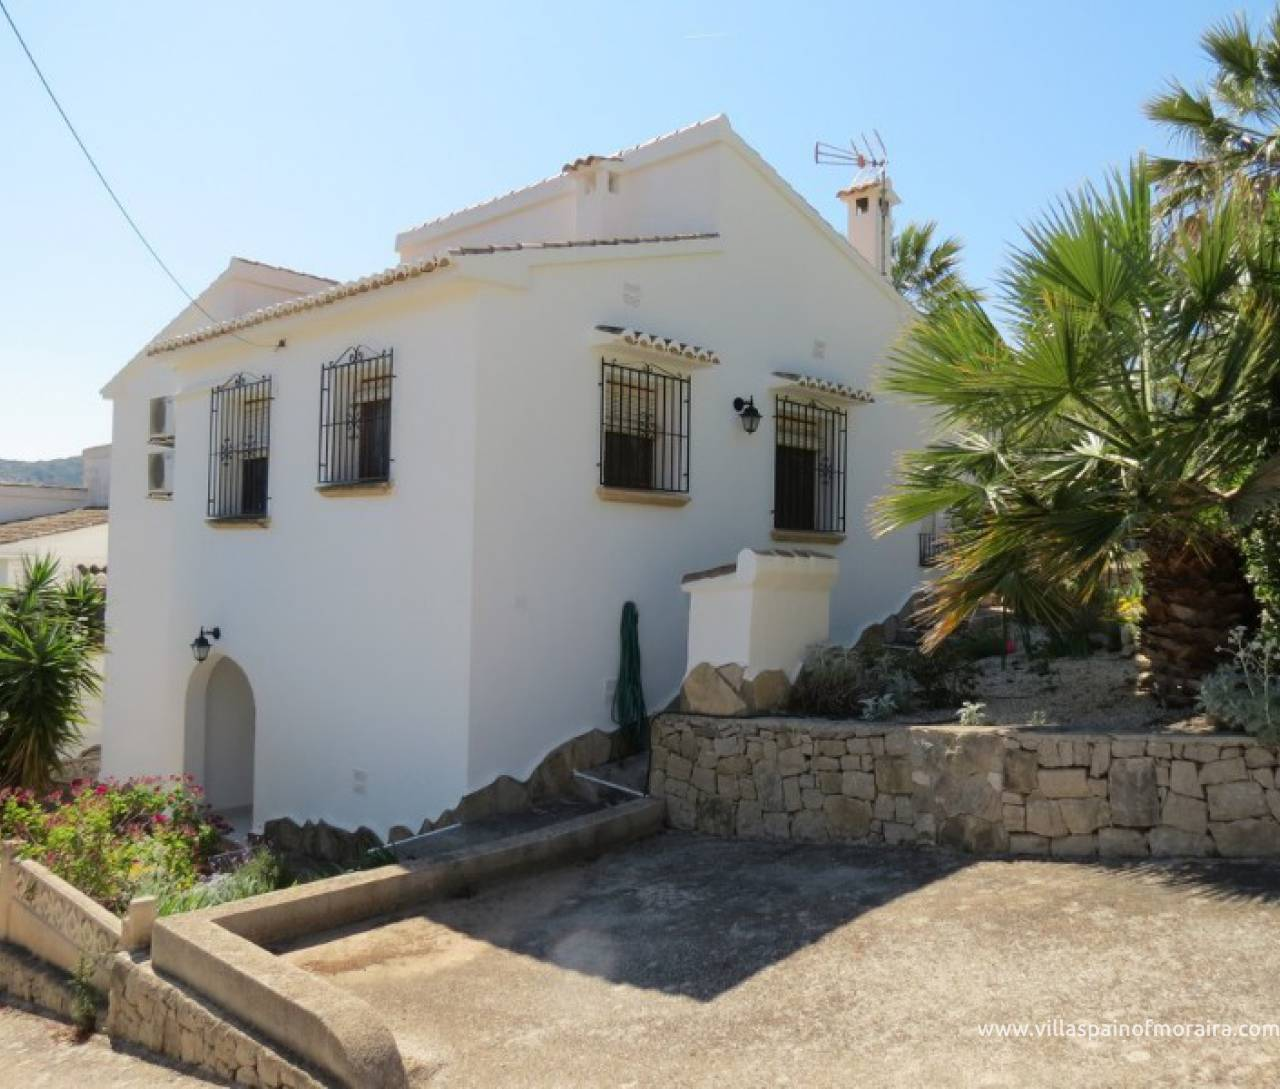 Villa for sale in El Portet Moraira